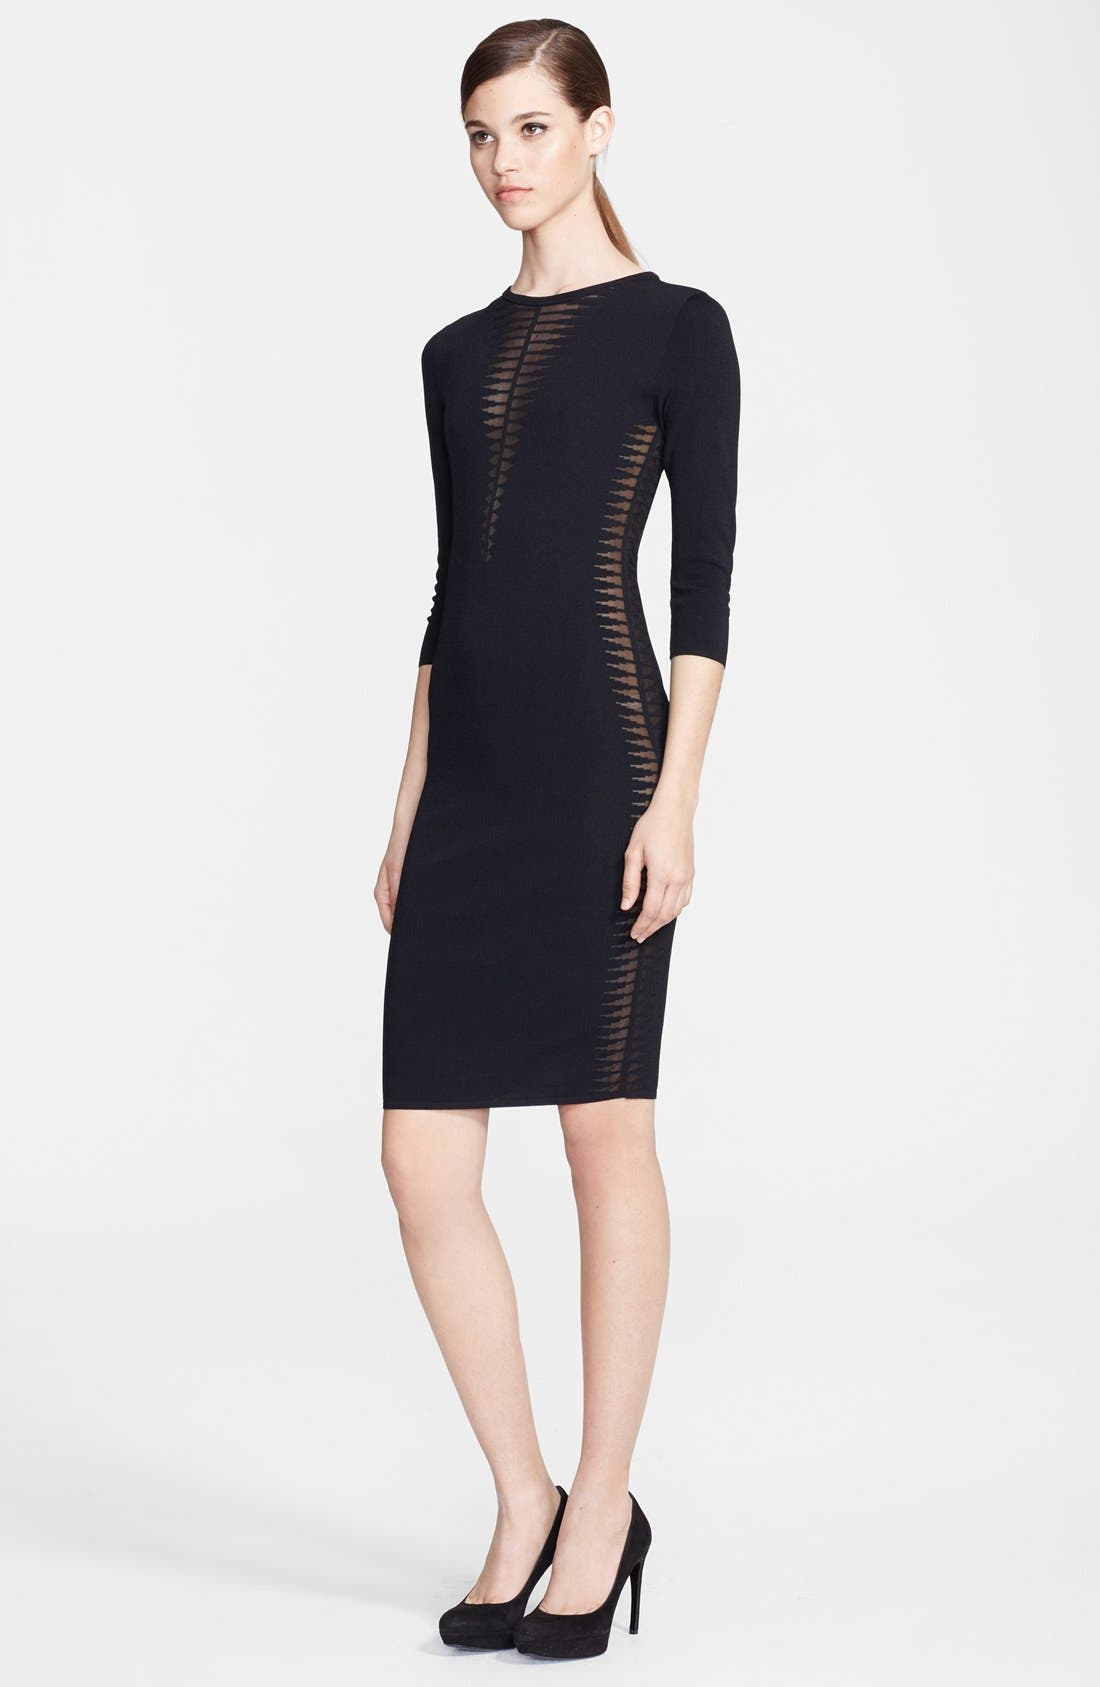 Alternate Image 1 Selected - Alexander McQueen Spine Knit Dress